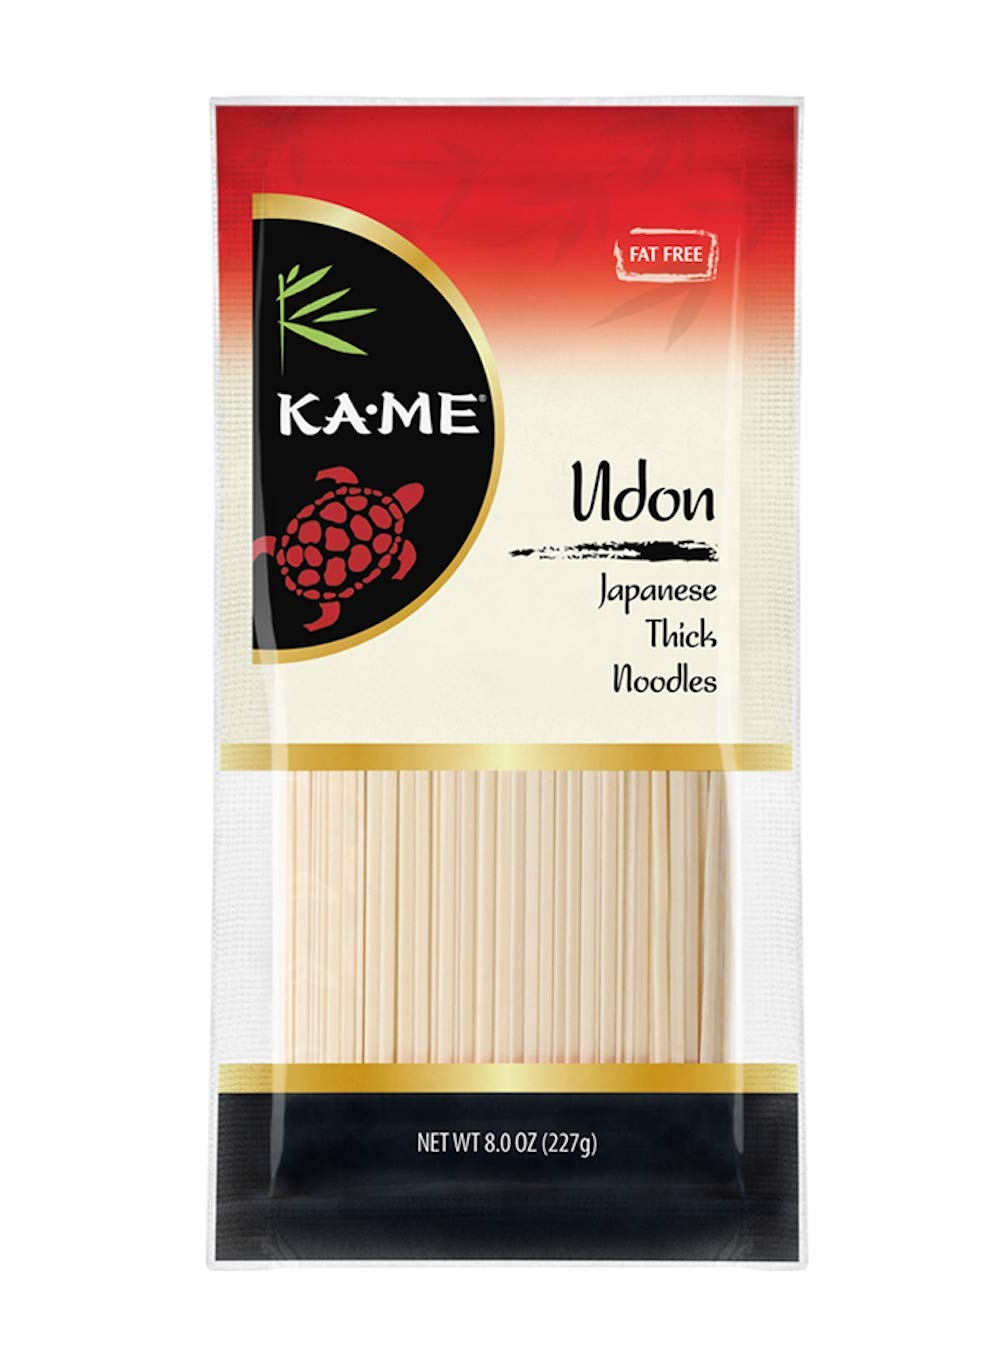 KA-ME Large special price Noodles Japanese Thick 8 Oz. Large-scale sale Bags 400473 Pack 72 of